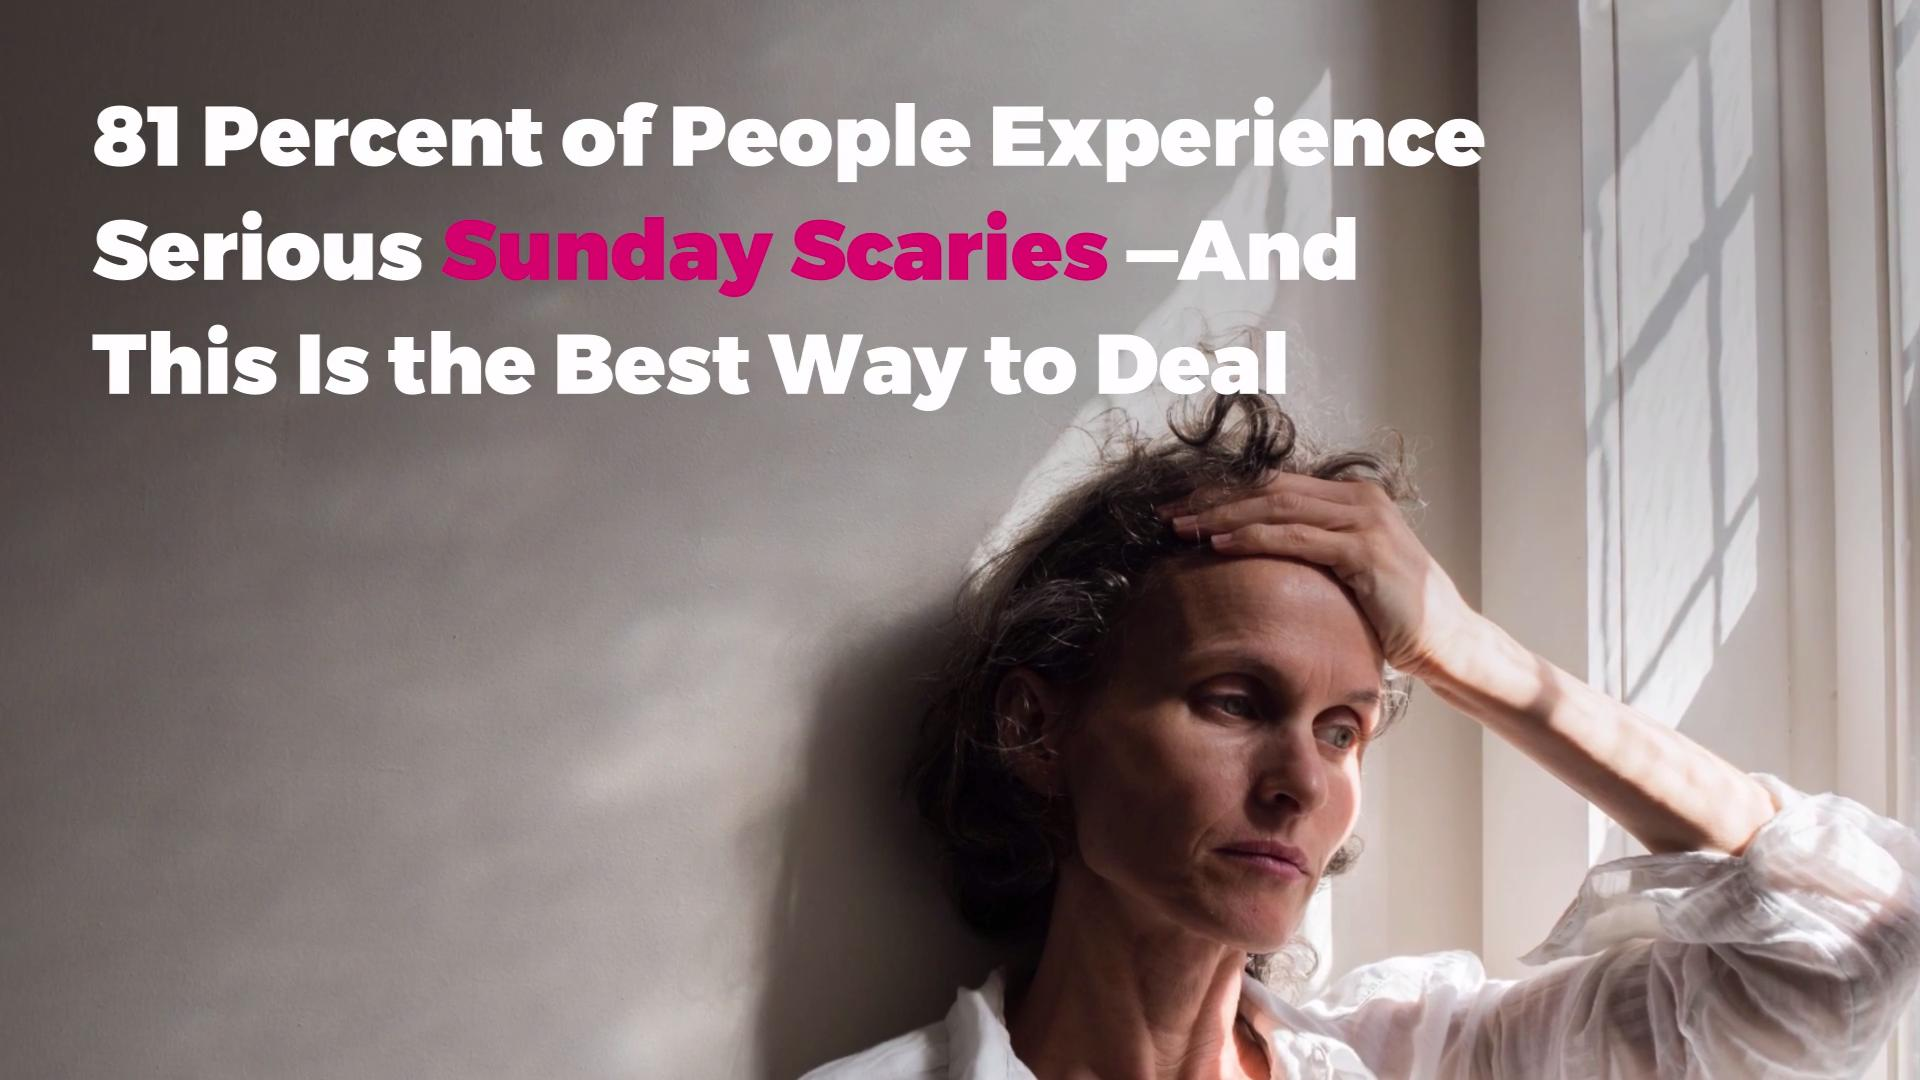 81 Percent of People Experience Serious Sunday Scaries—And This Is